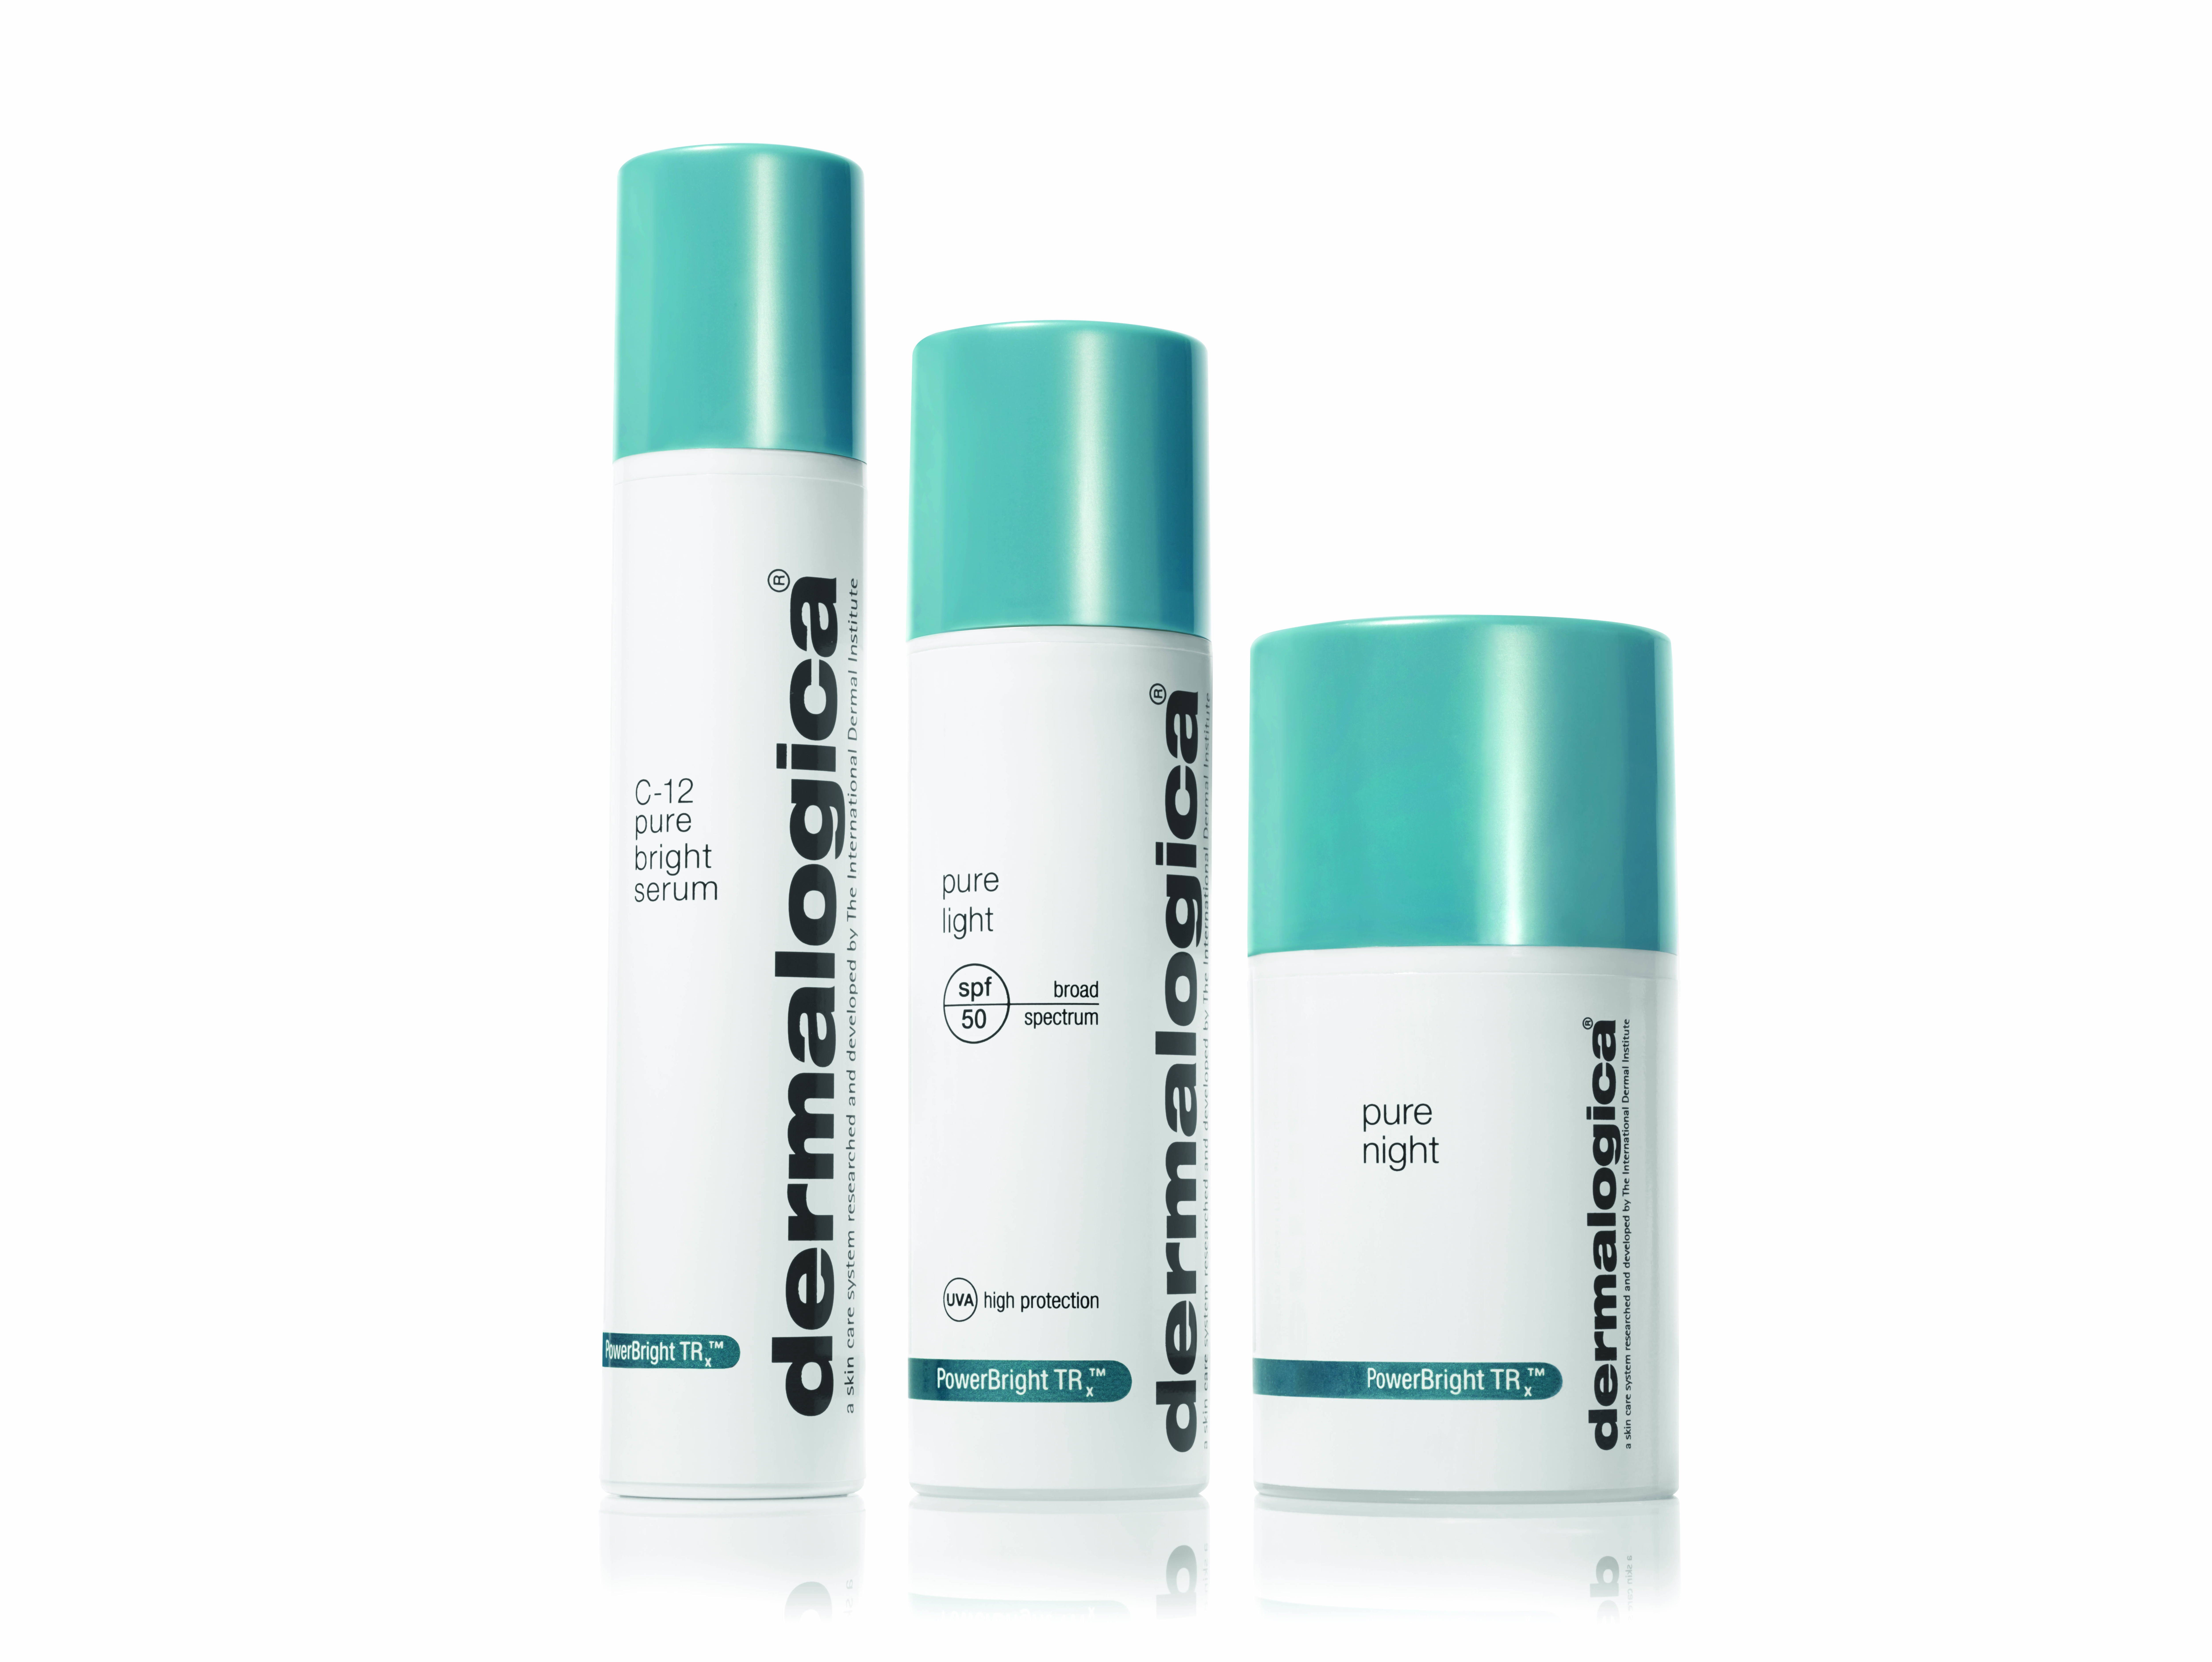 Impartial Review Dermalogica Powerbright Trx Phoebe Parke